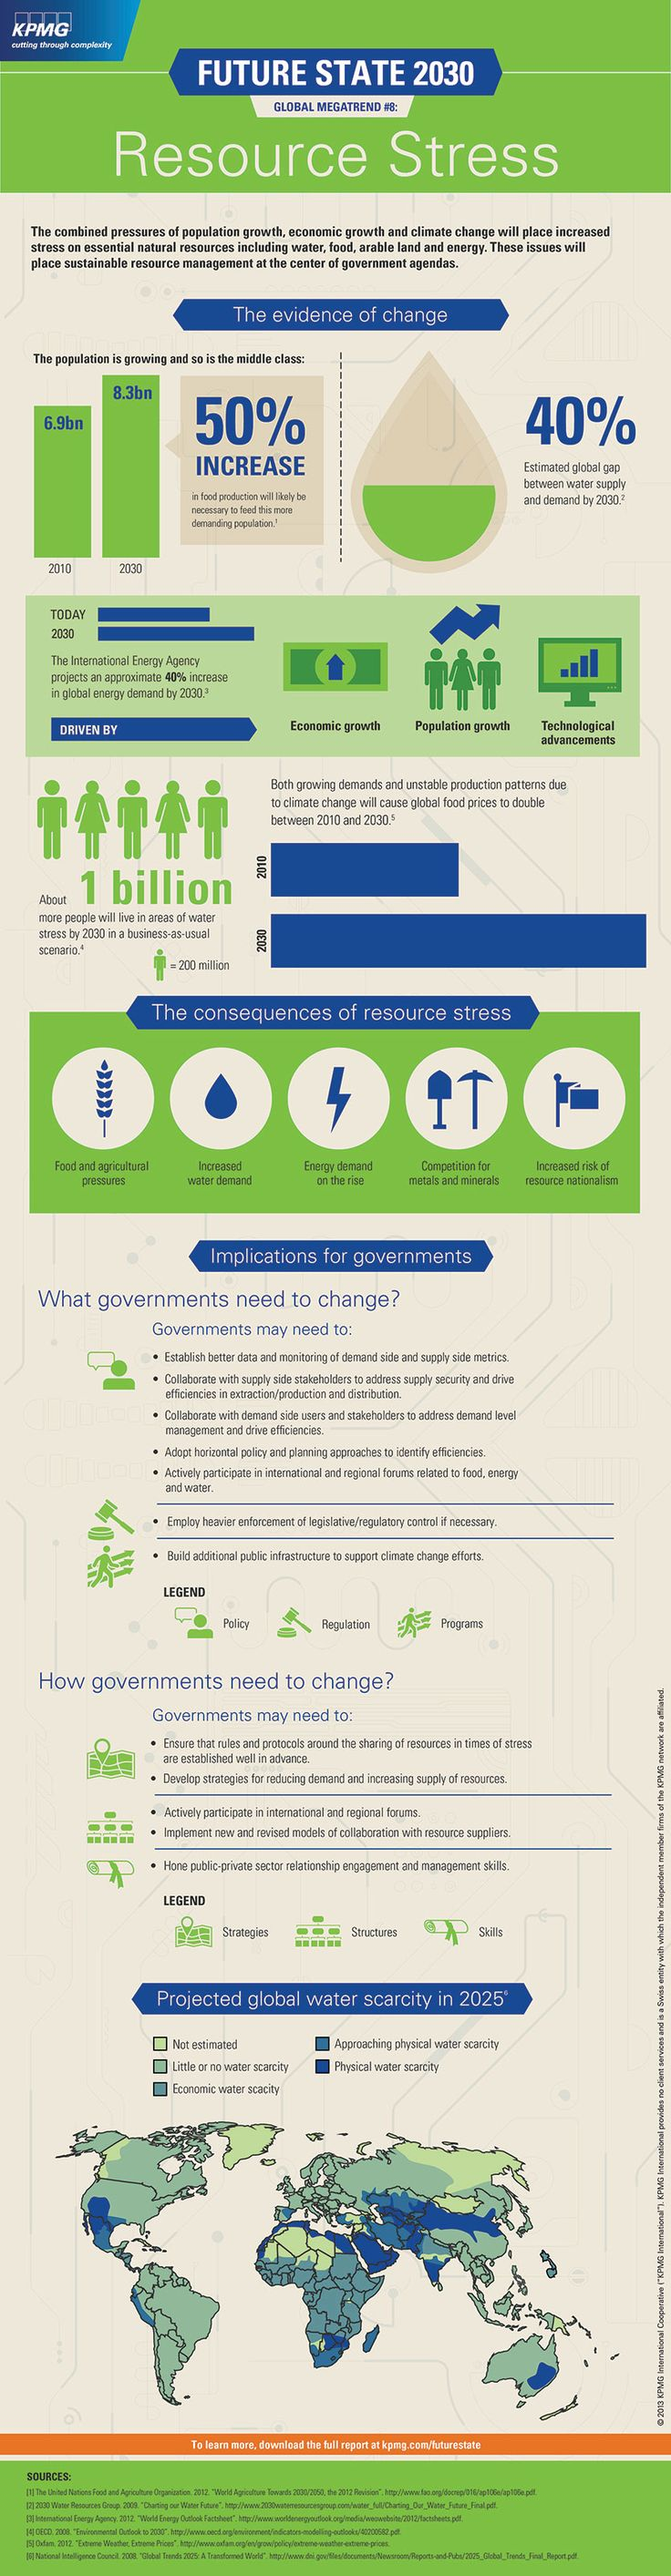 resource-stress-infrographic-large